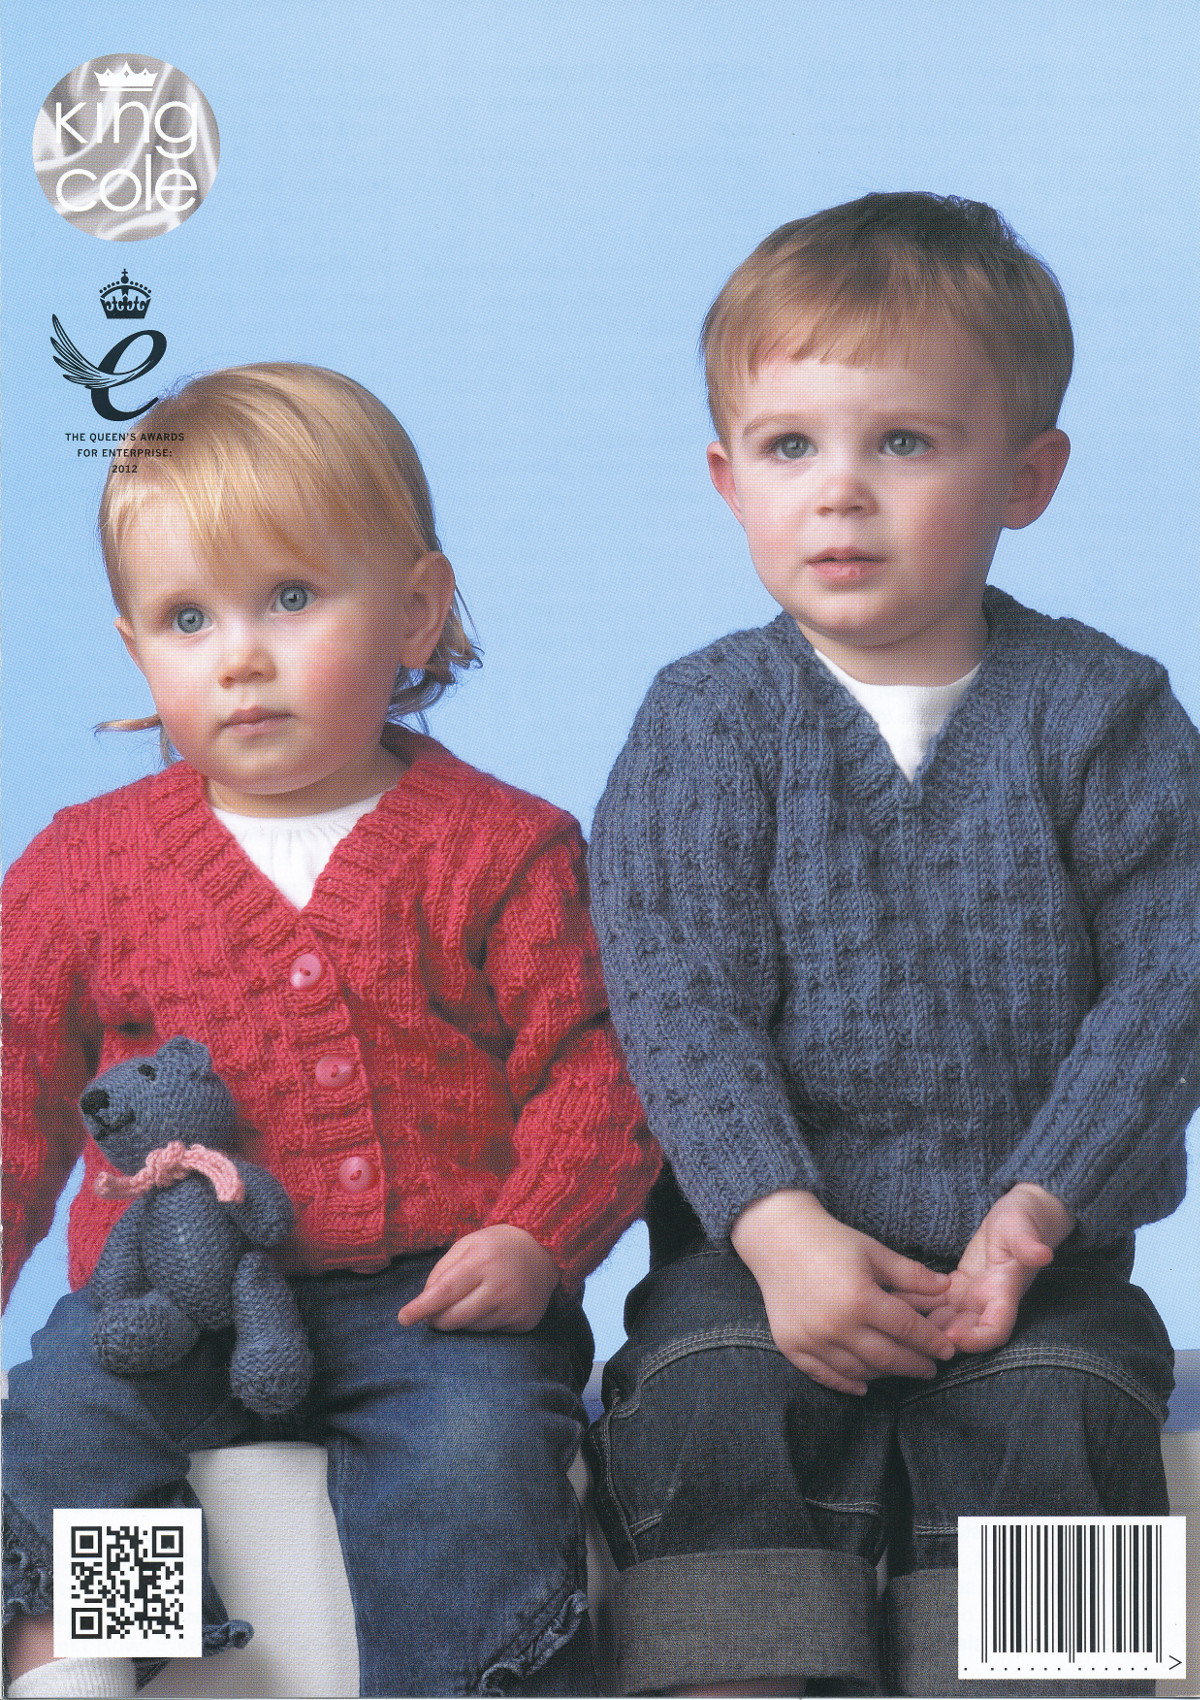 King Cole Teddy Bear Knitting Pattern : Double Knitting Pattern King Cole Baby Sweater Cardigan & Teddy Bear in D...